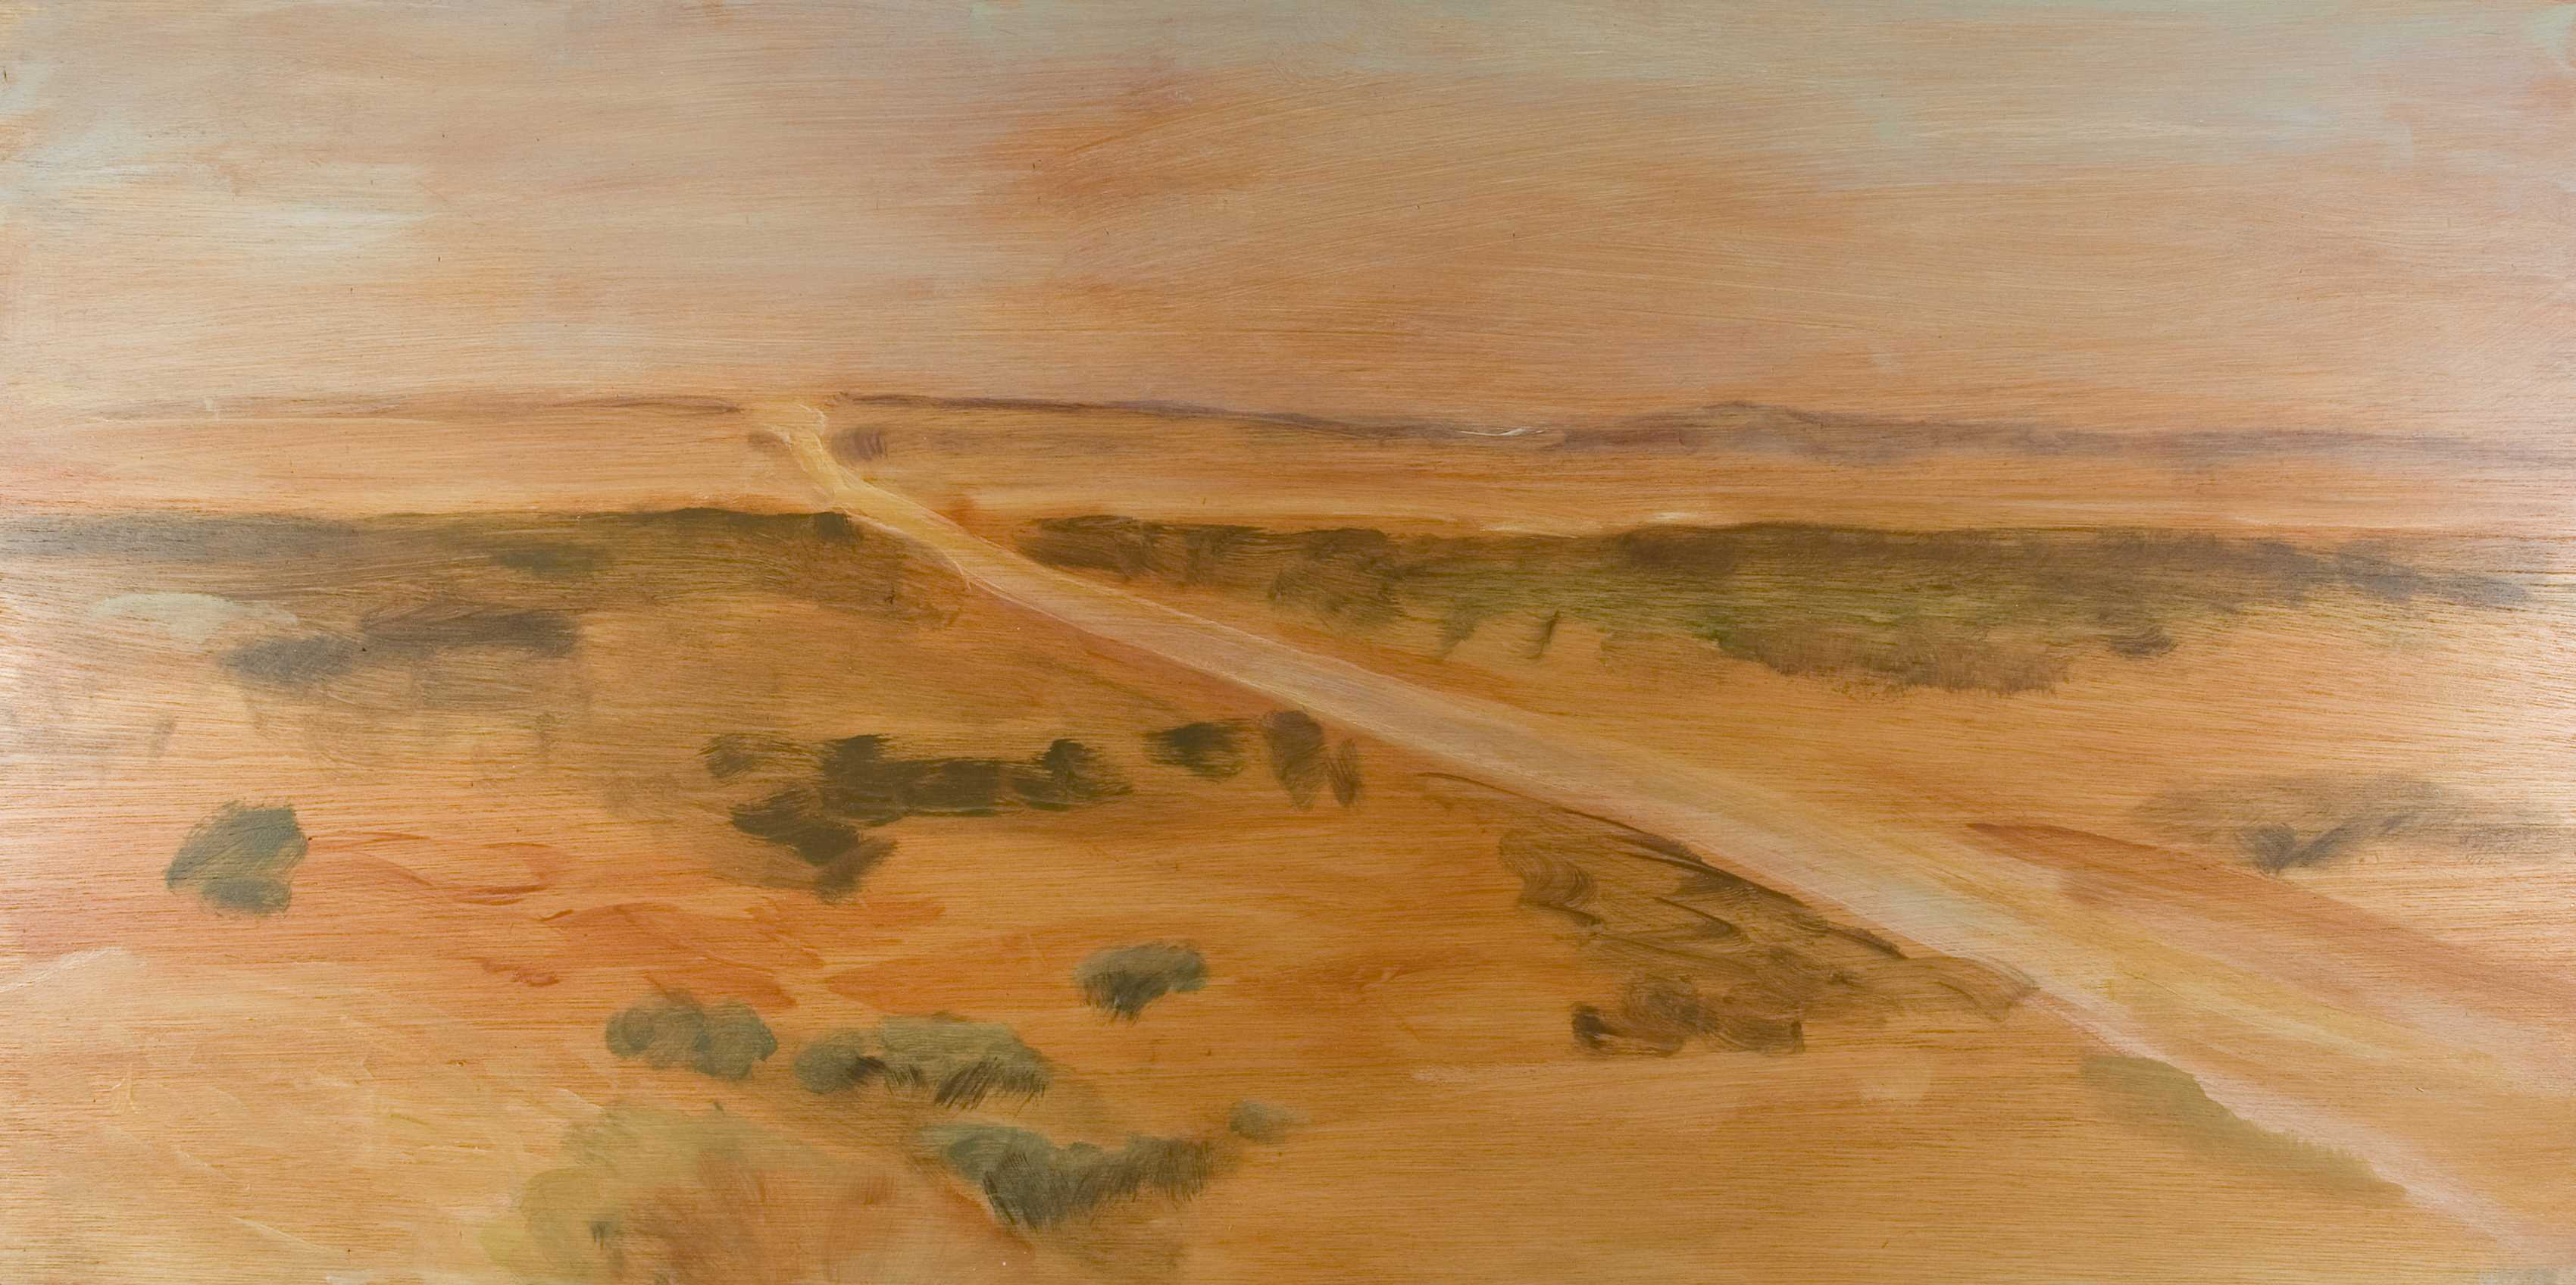 Desert Rd Dusk 07, Oil on board, 60 x 120cm